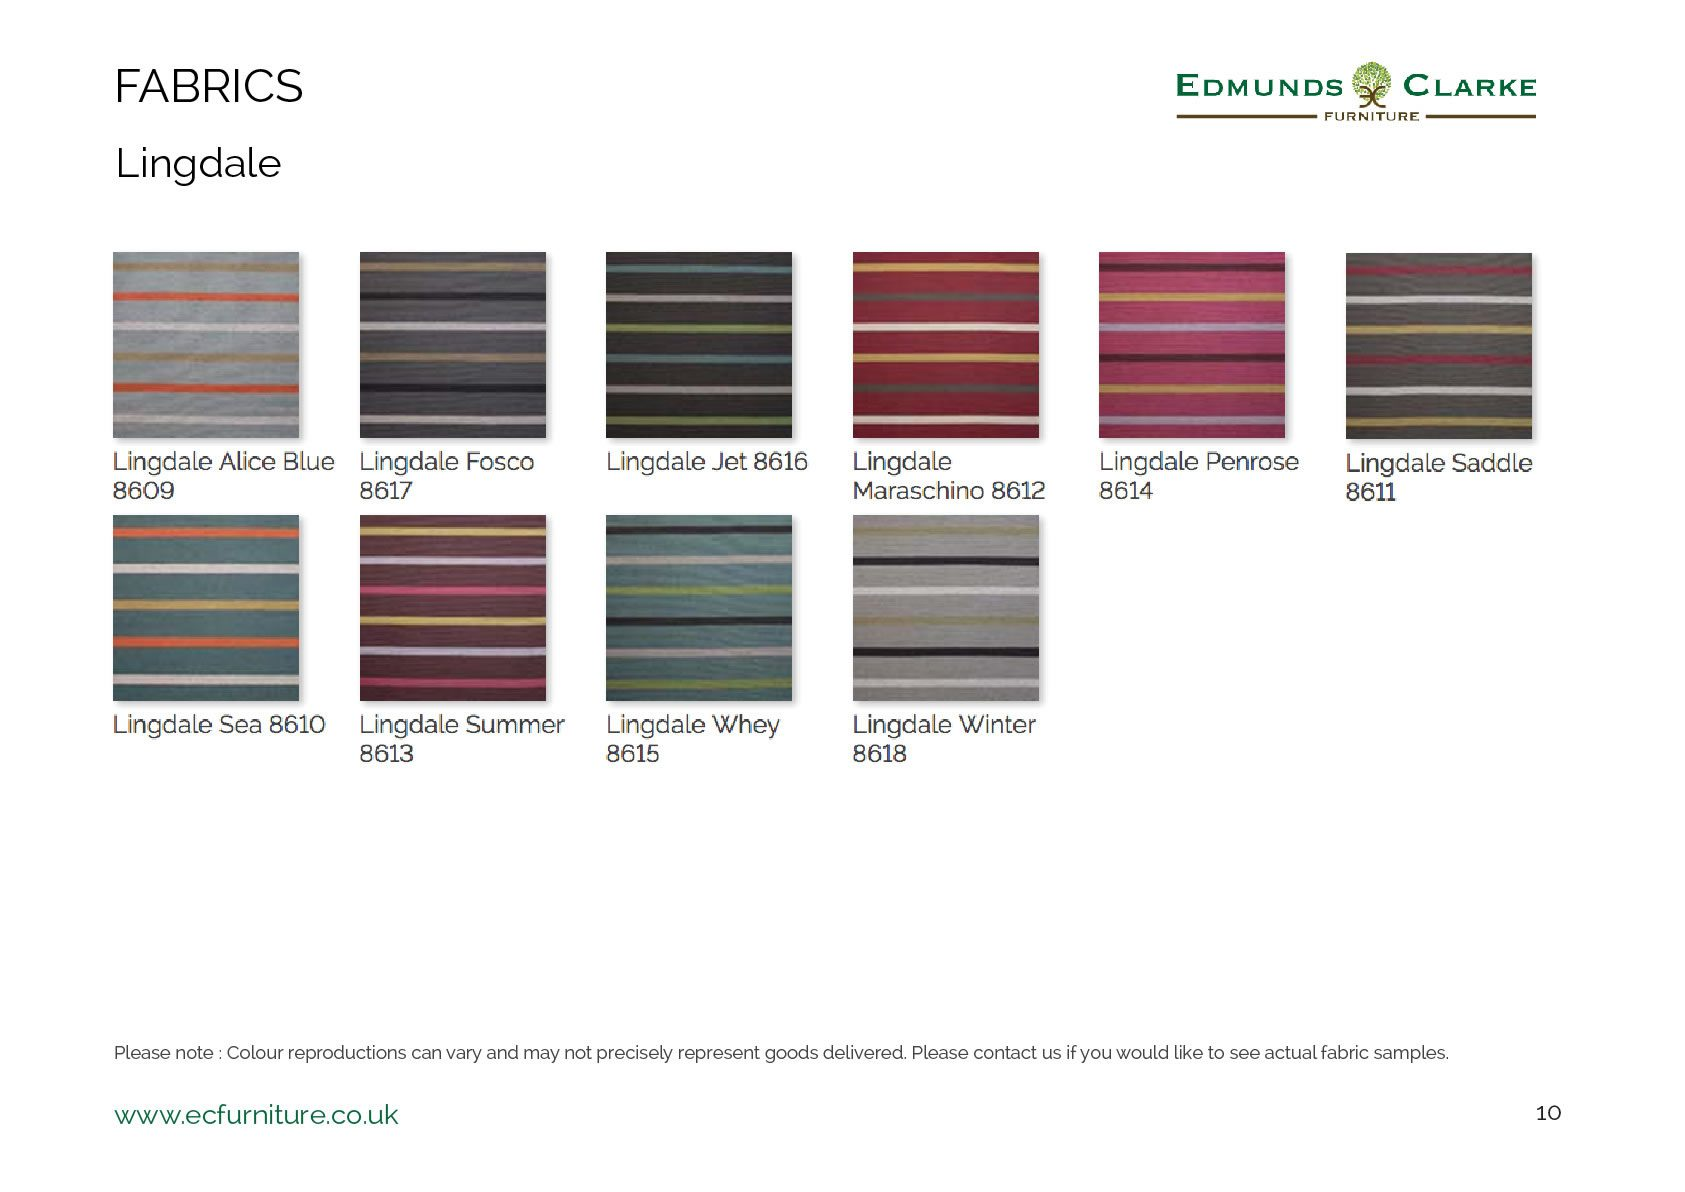 Lingdale fabric swatches for our Edmunds dining chairs